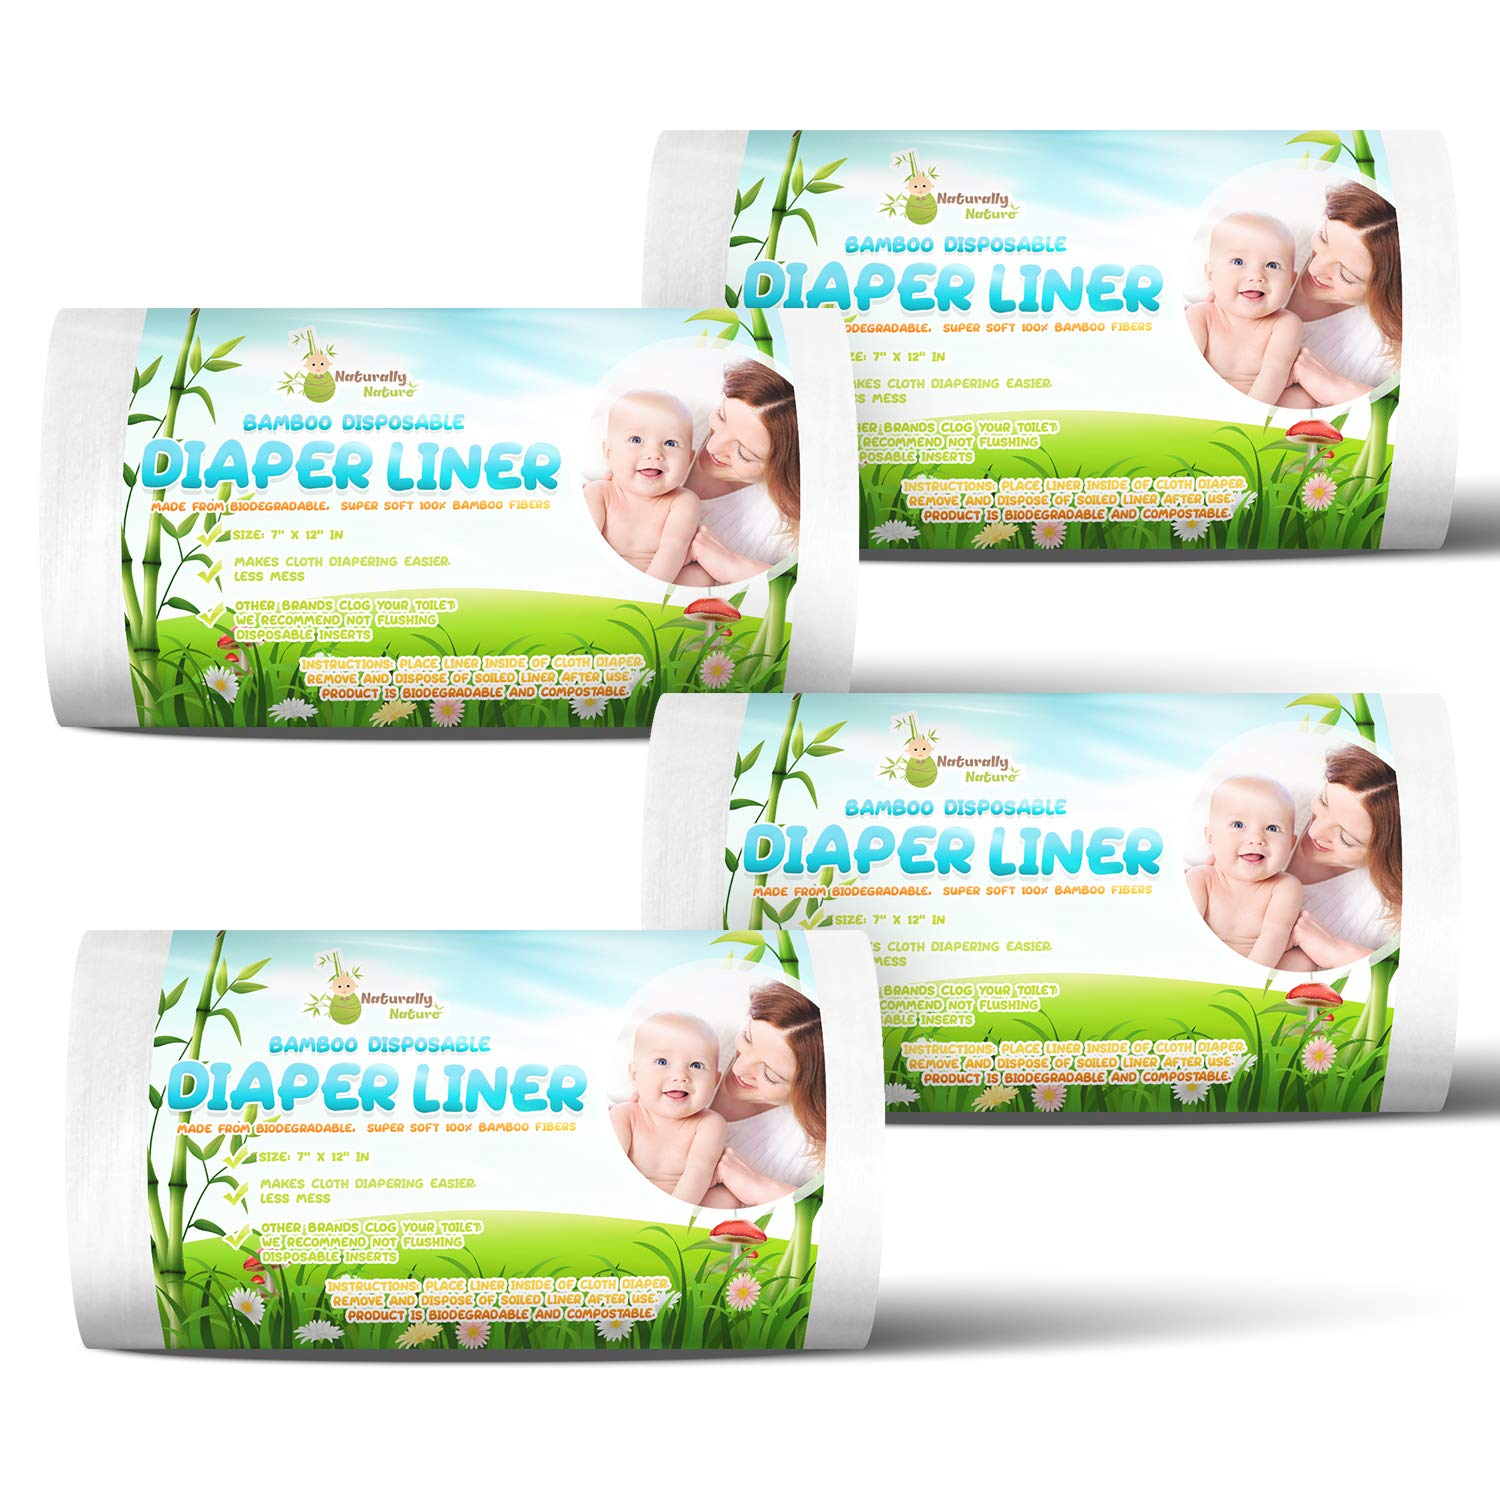 4 Pack Set of 4 Naturally Natures Bamboo Diaper Liners 400 Sheets Biodegradable Inserts Gentle and Soft Unscented Chlorine and Dye-Free 400 Liners